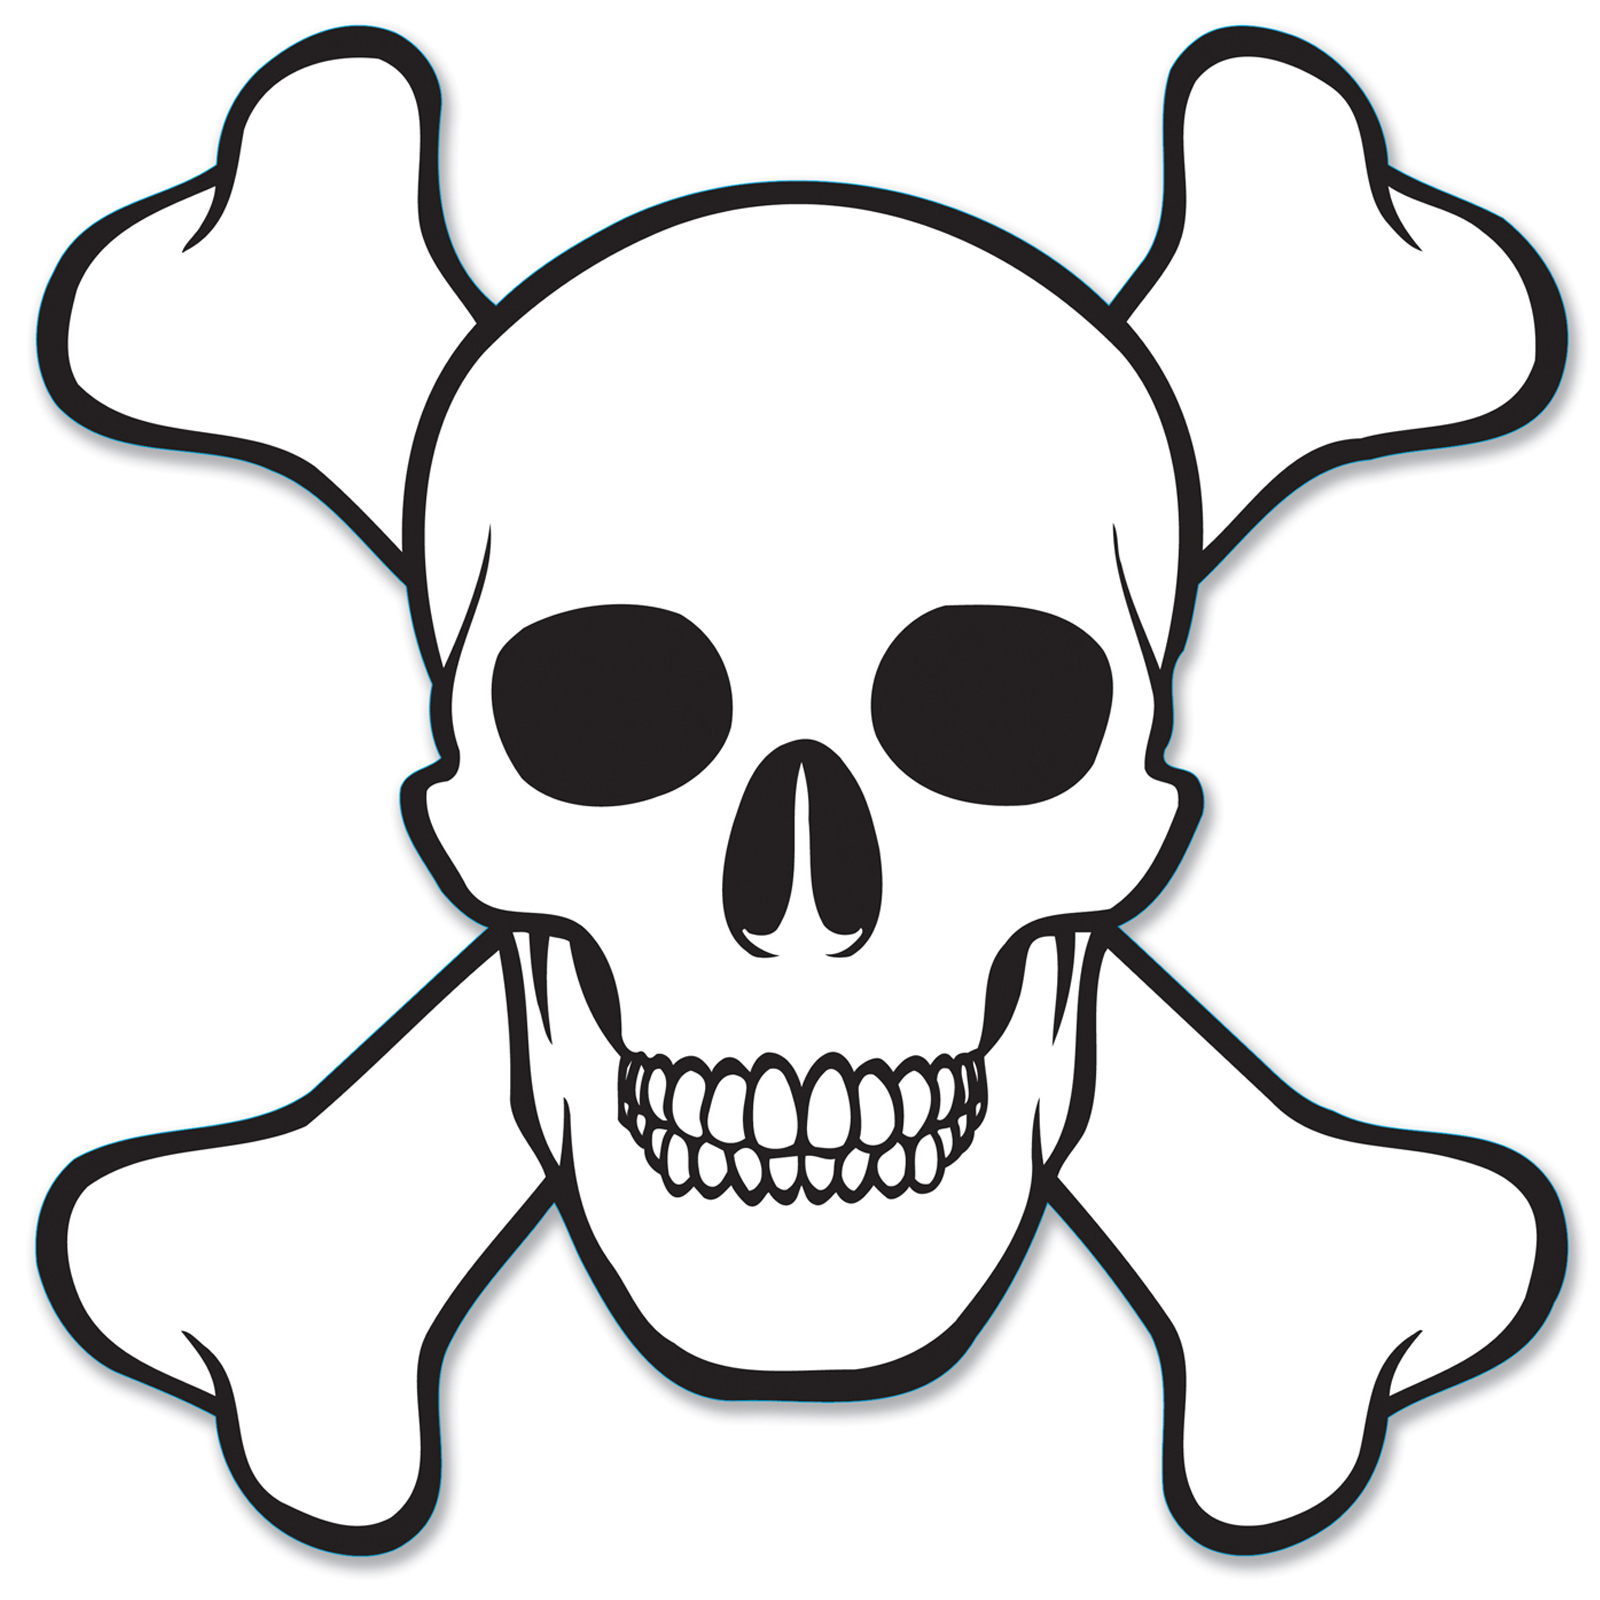 Free Pirate Skull And Crossbones, Download Free Clip Art.